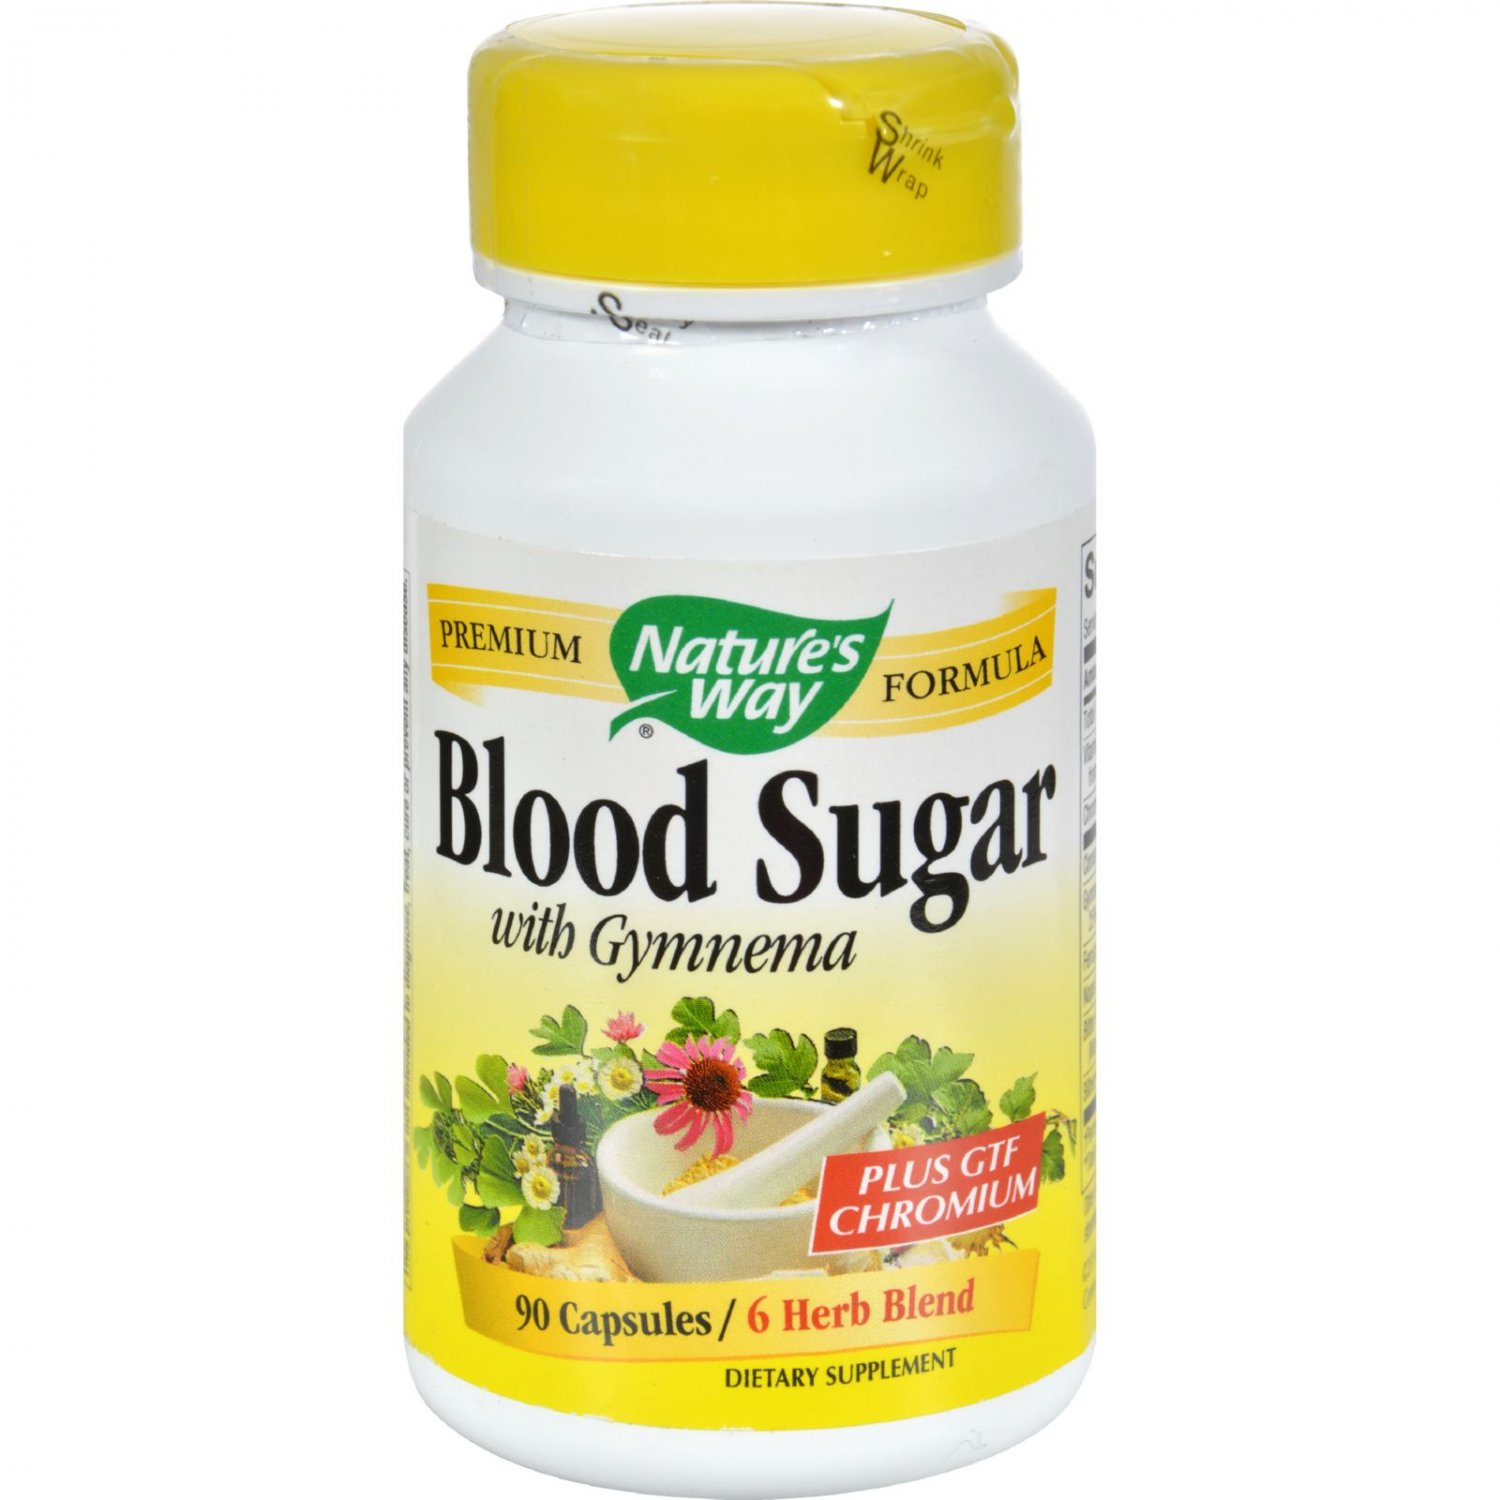 Nature's Way Blood Sugar with Gymnema - 90 Capsules